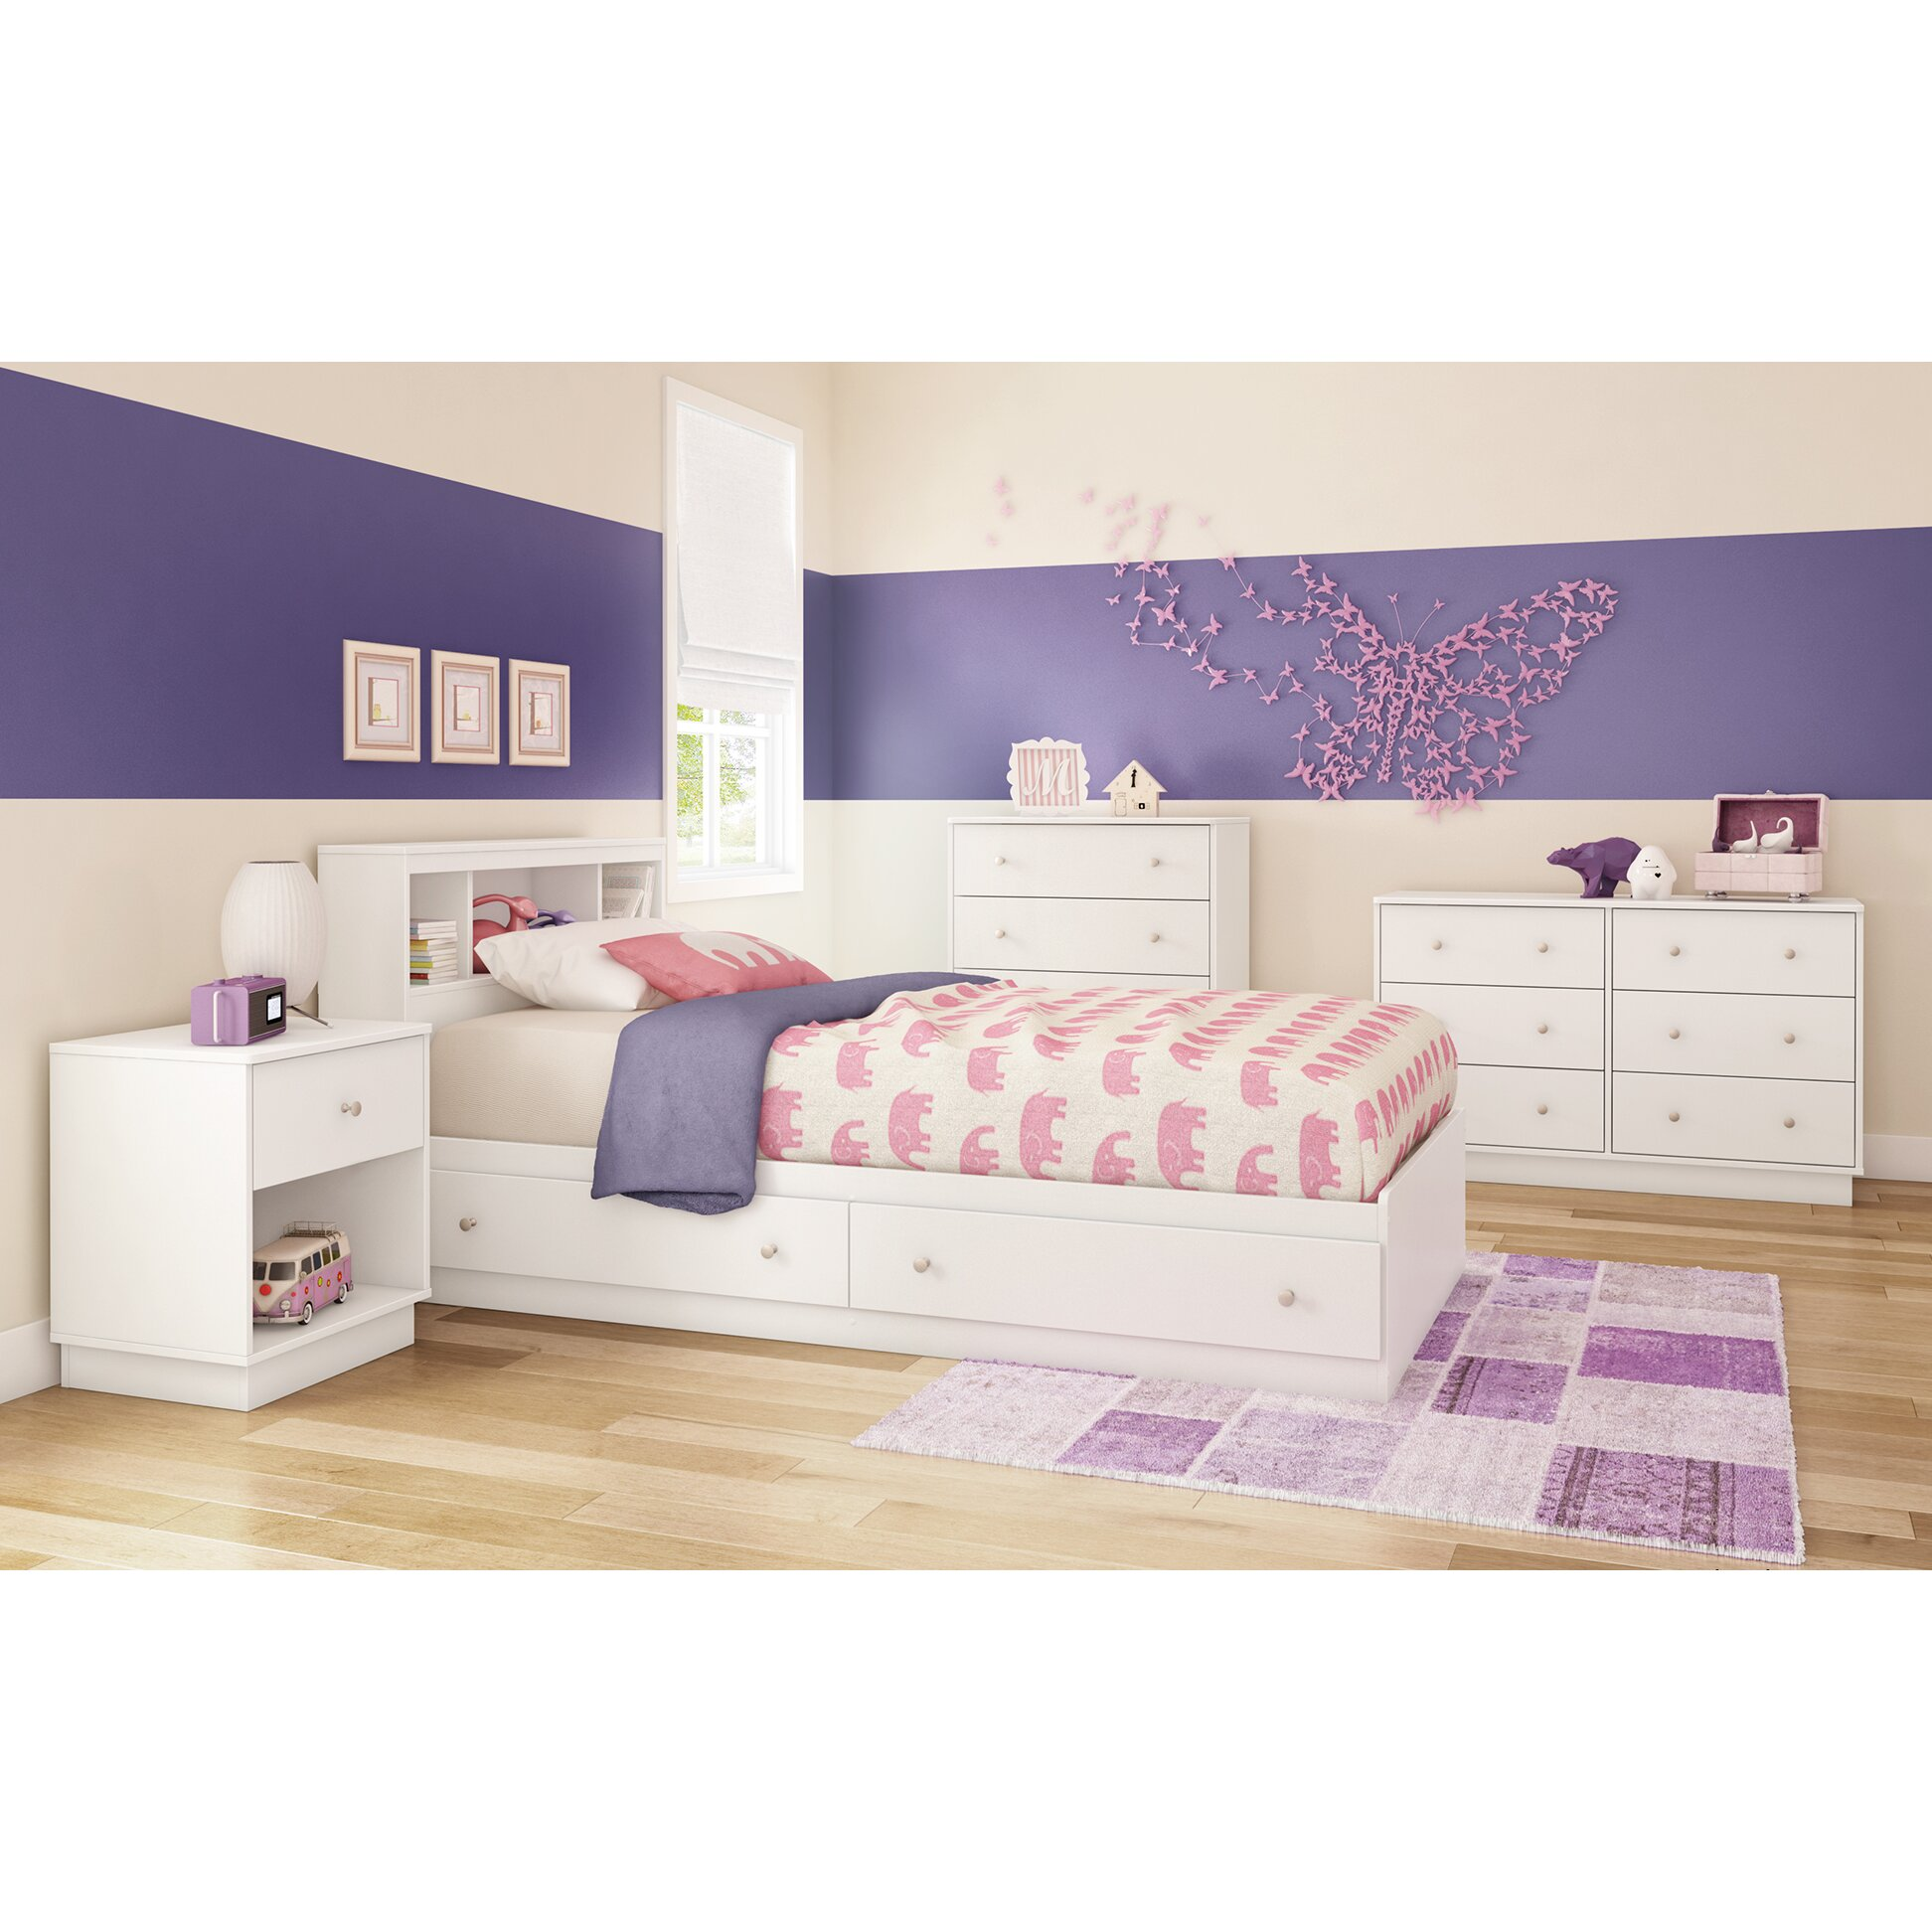 Bedroom Furniture Standard Kids 39 Bedroom Sets South Shore SKU